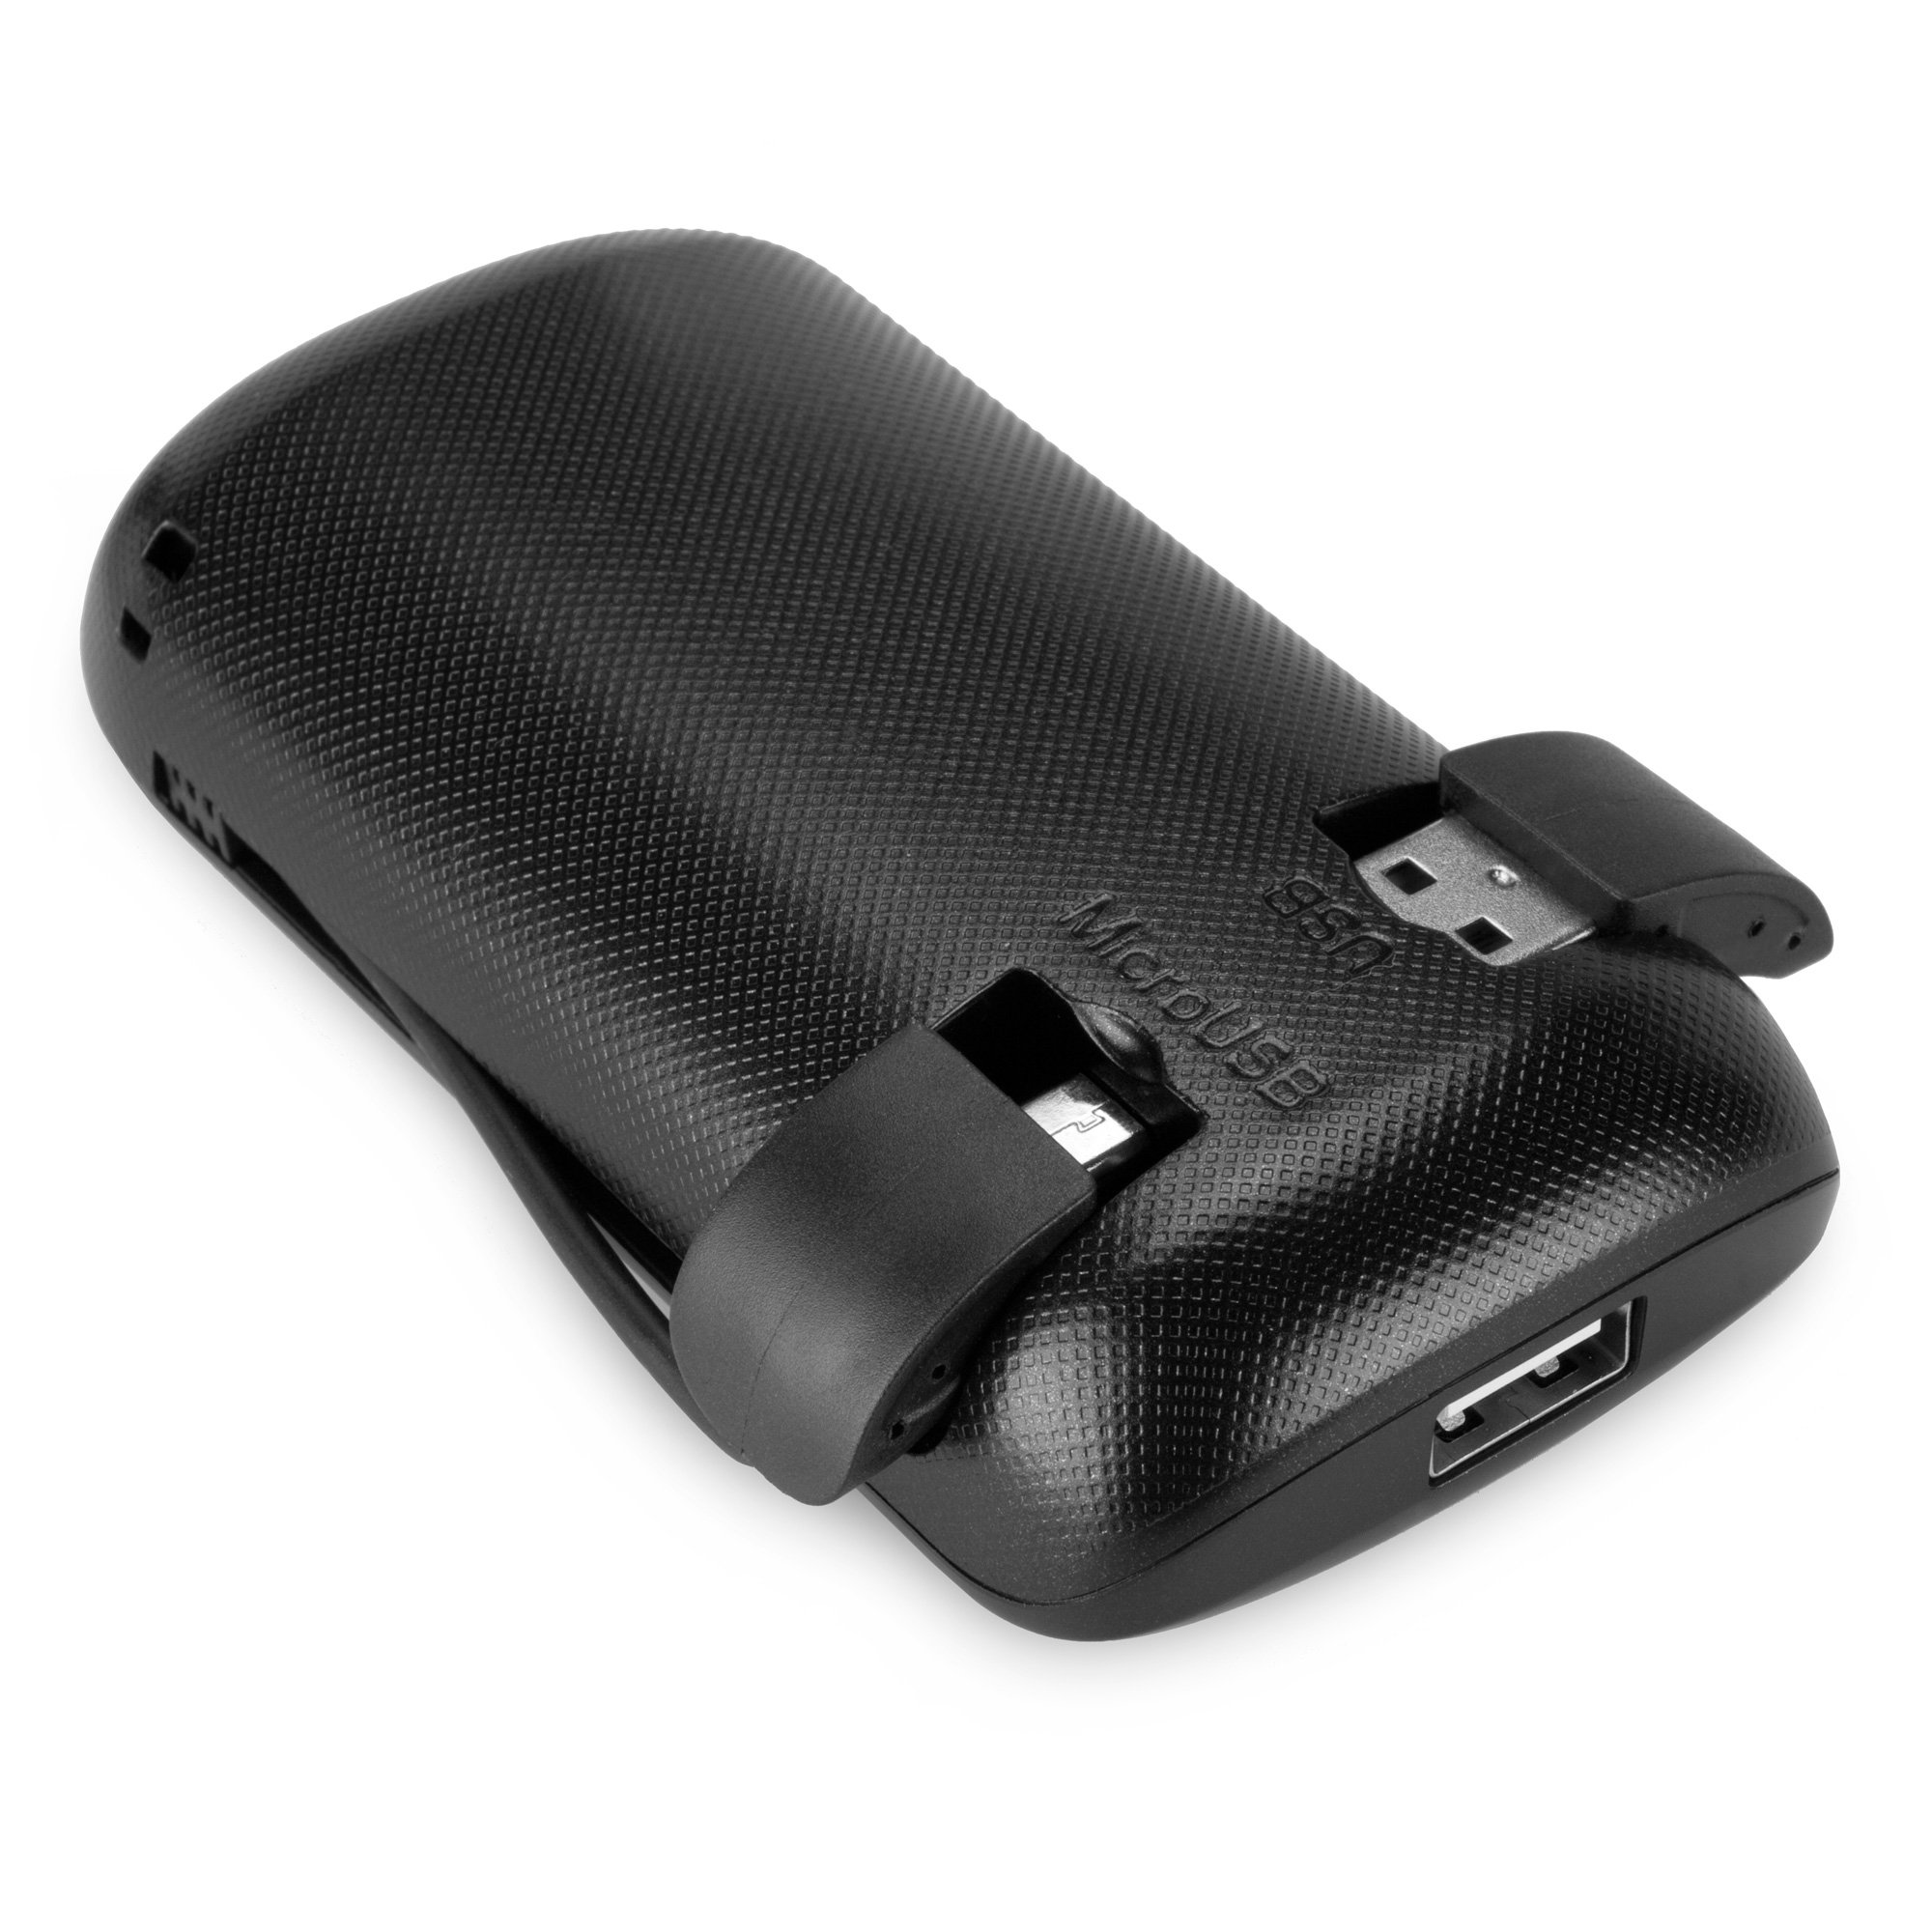 BoxWave Rejuva Power Pack Pro Power Bank - Compact, Portable 4,400 mAh Rechargeable Li-ion Battery Charger and Power Bank - Compatible with Apple iPhone 5, iPhone 6, iPad 3, iPad 4, iPad Air, Samsung Galaxy S4, Galaxy S5, OnePlus One, and many more! (Blac by BoxWave (Image #4)